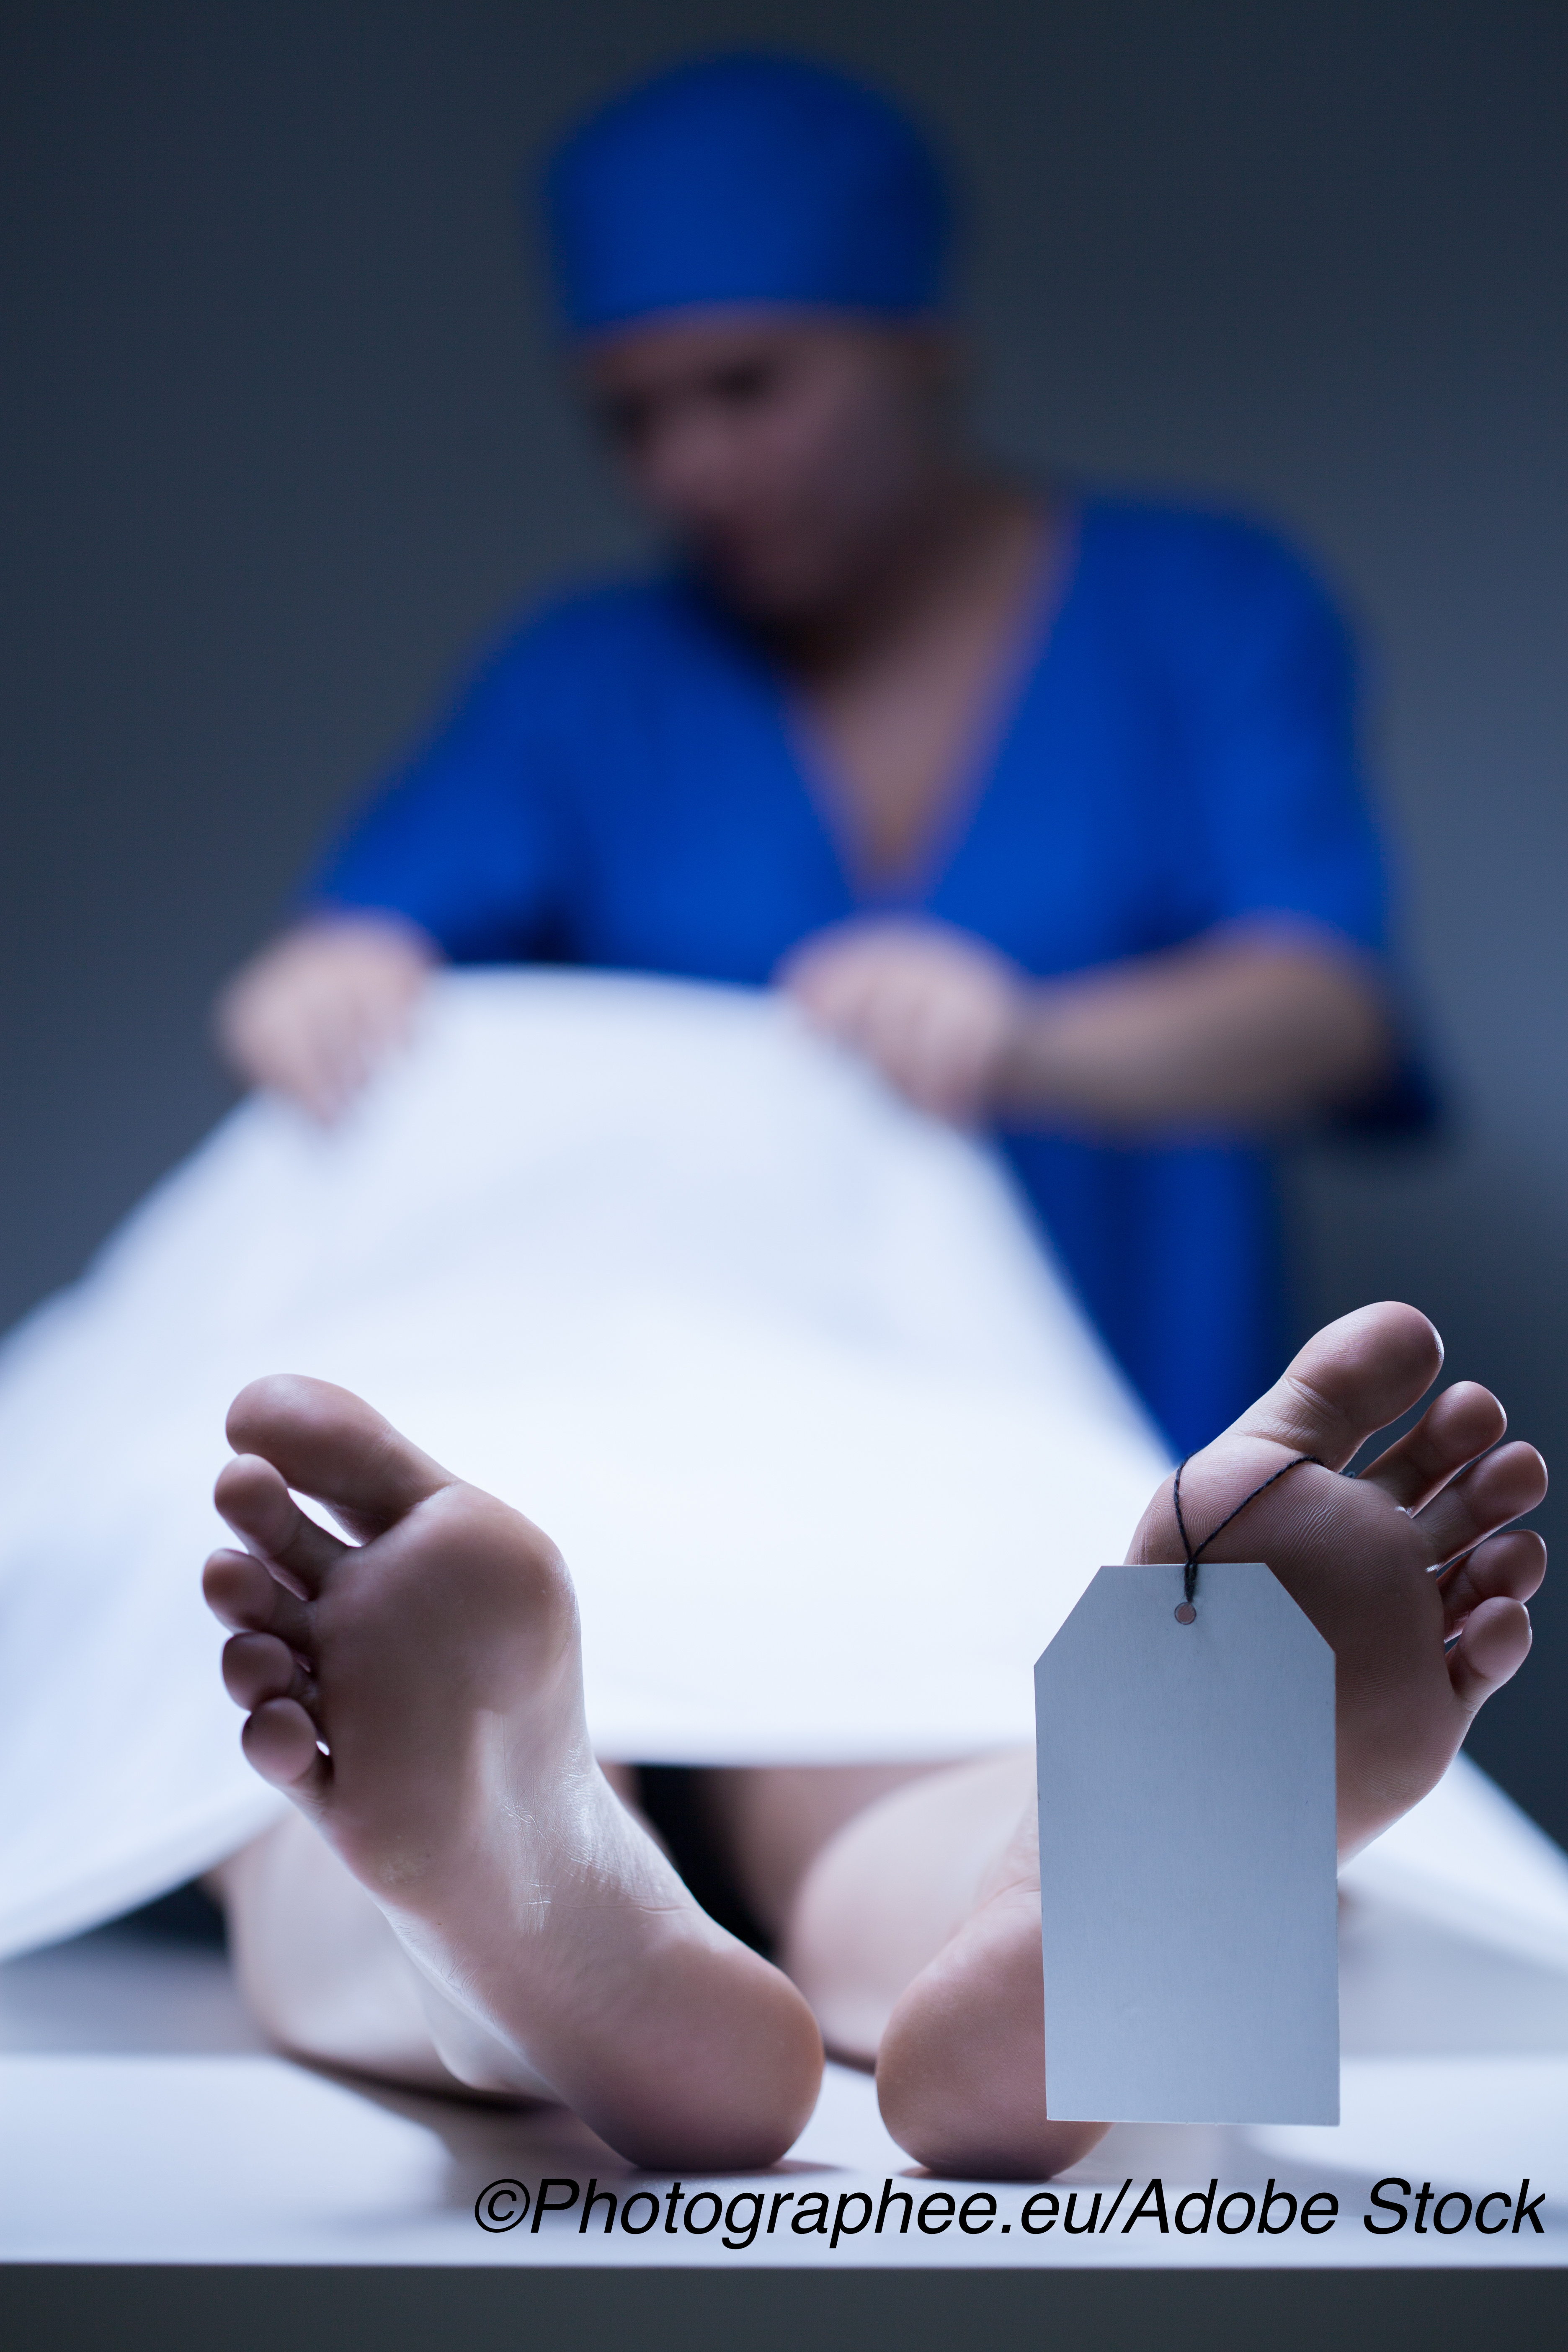 Clinical Autopsies More Frequent in Black Patients